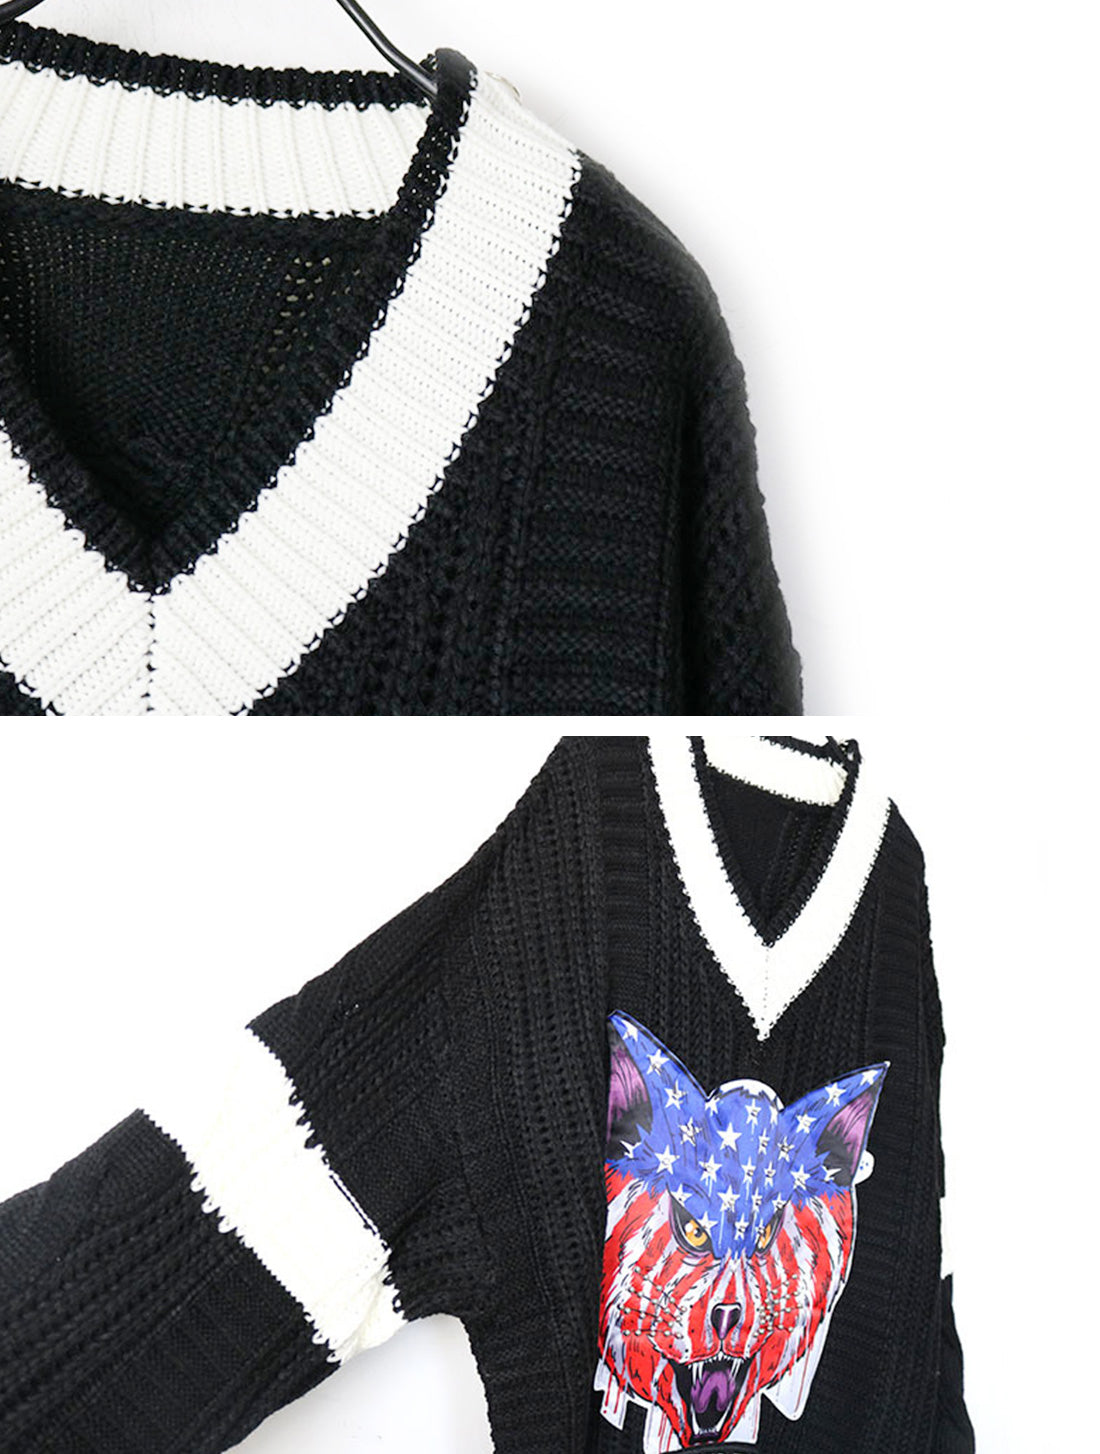 Thunder The Angry Face Sweater Top Details 2